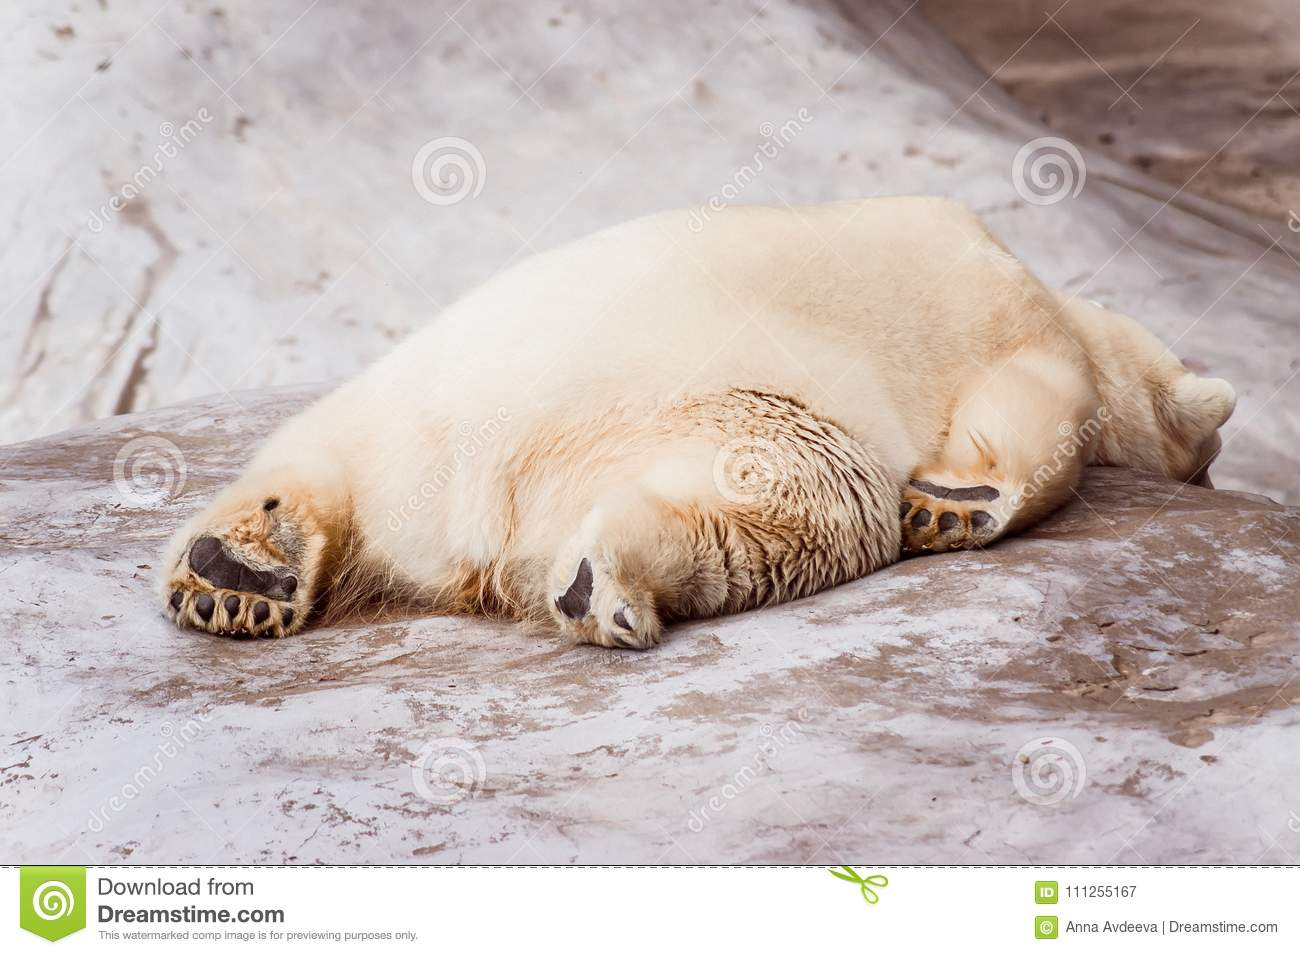 Exhausted white bear lies on the stone